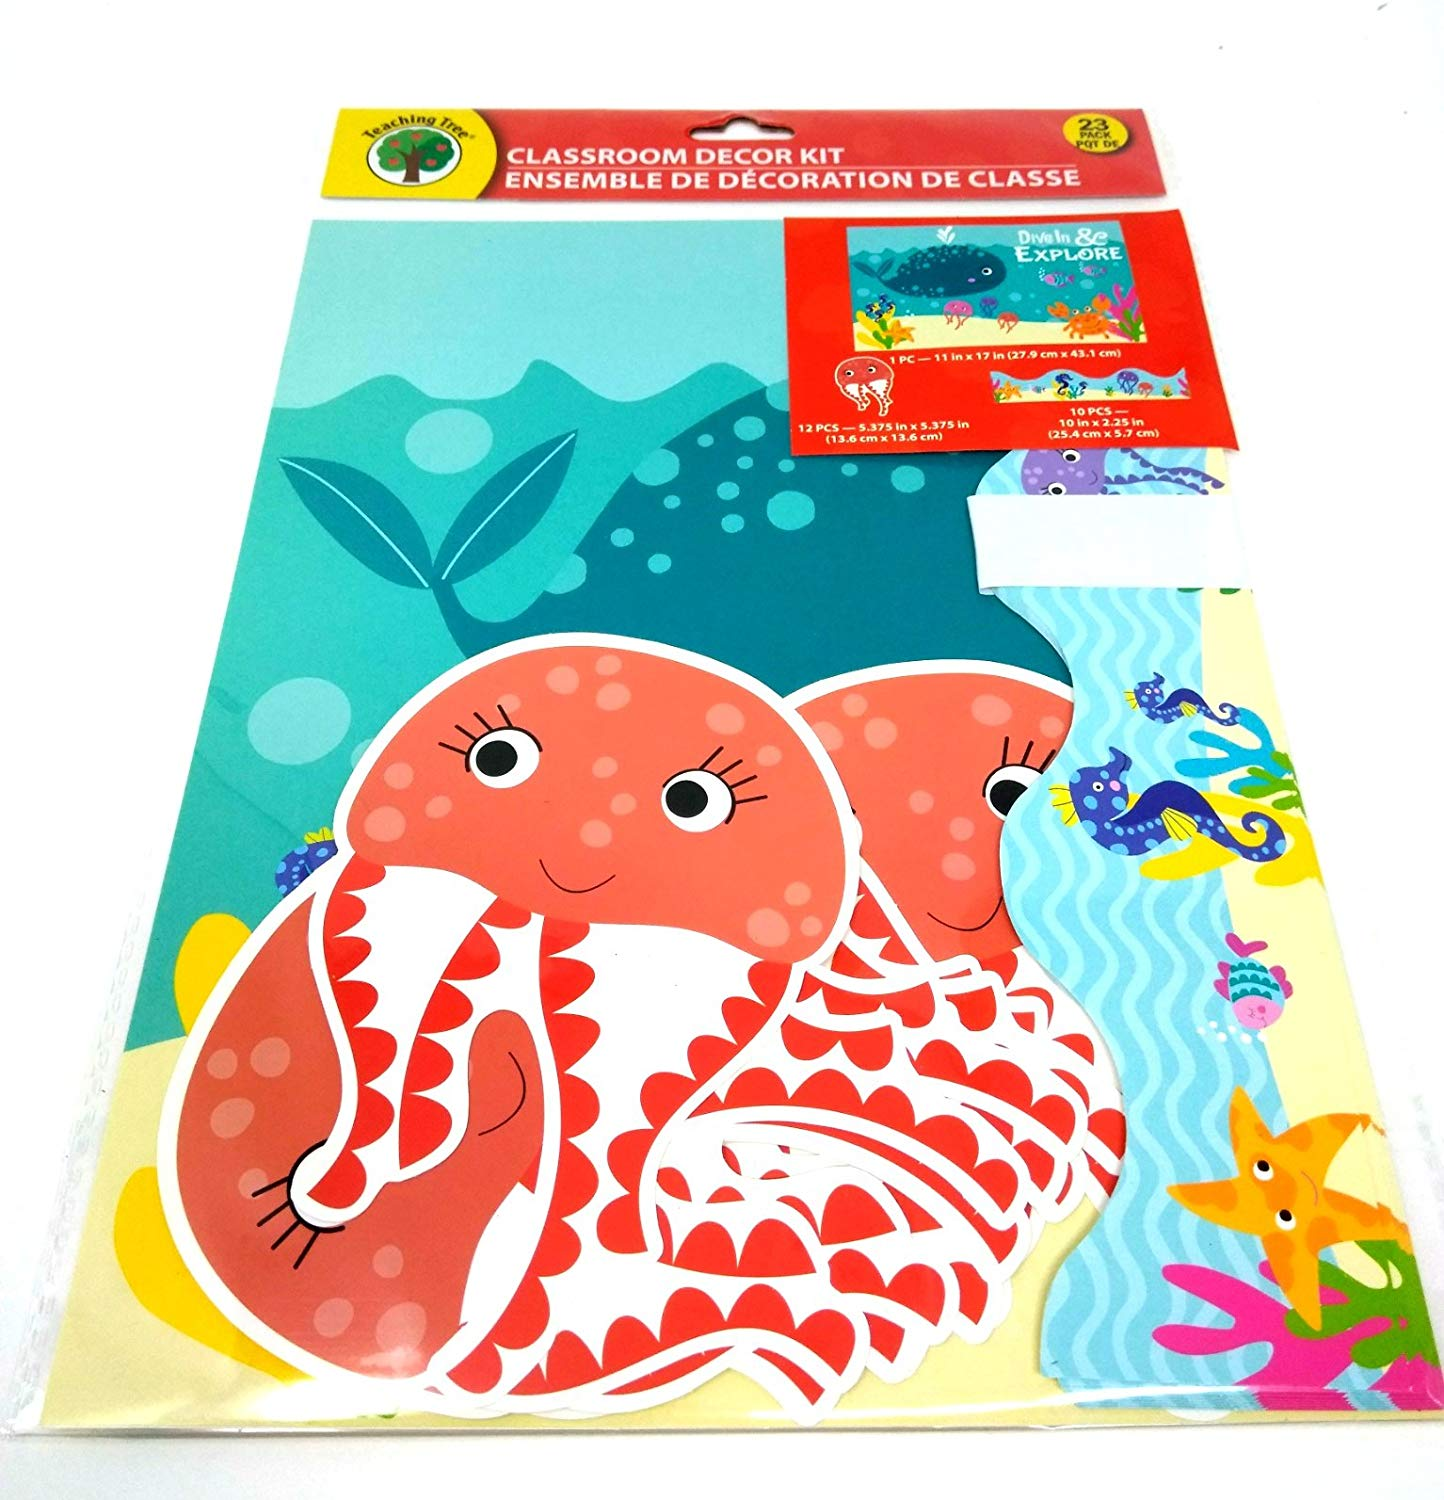 Back to School Elementary Middle High Junior School Classroom Teacher Supplies Teaching Tree Classroom Decor Kit Ocean Sea Creatures w/Border BONUS Cube